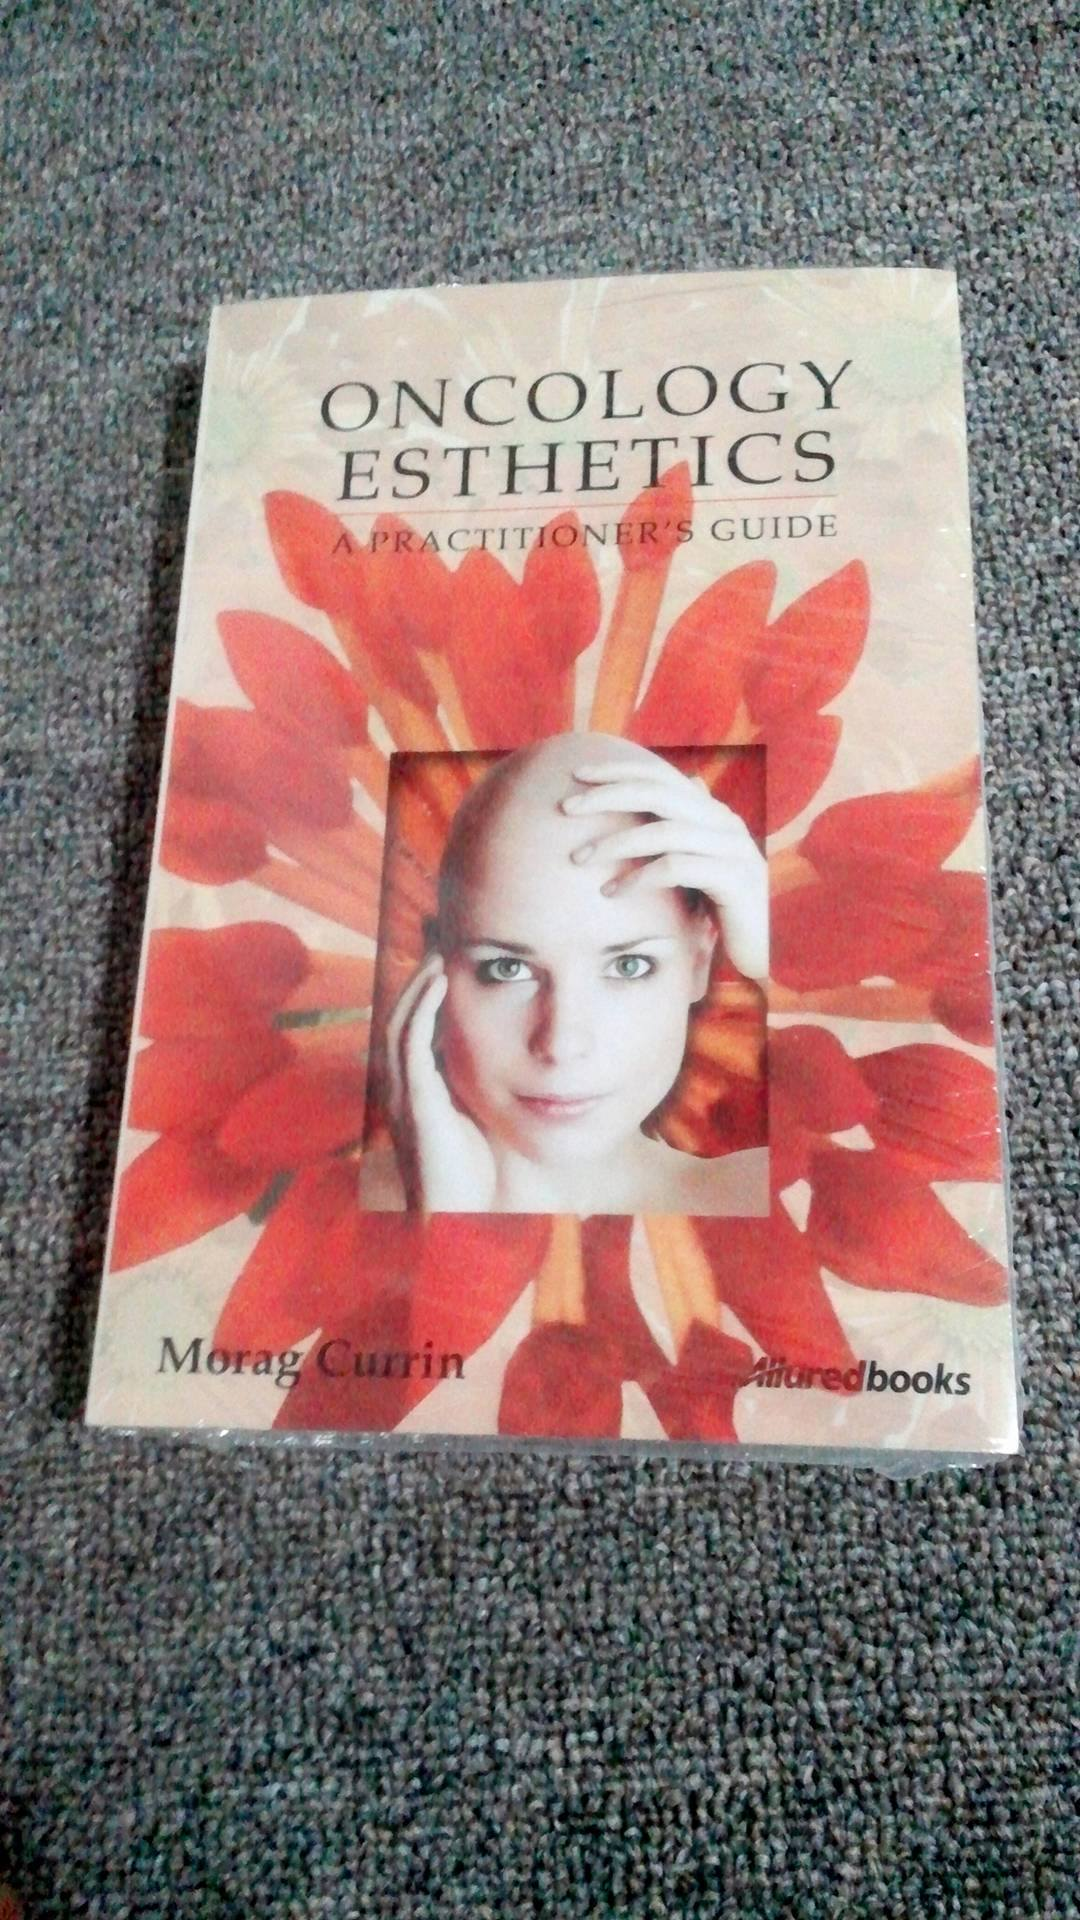 Esthetics and science textbooks